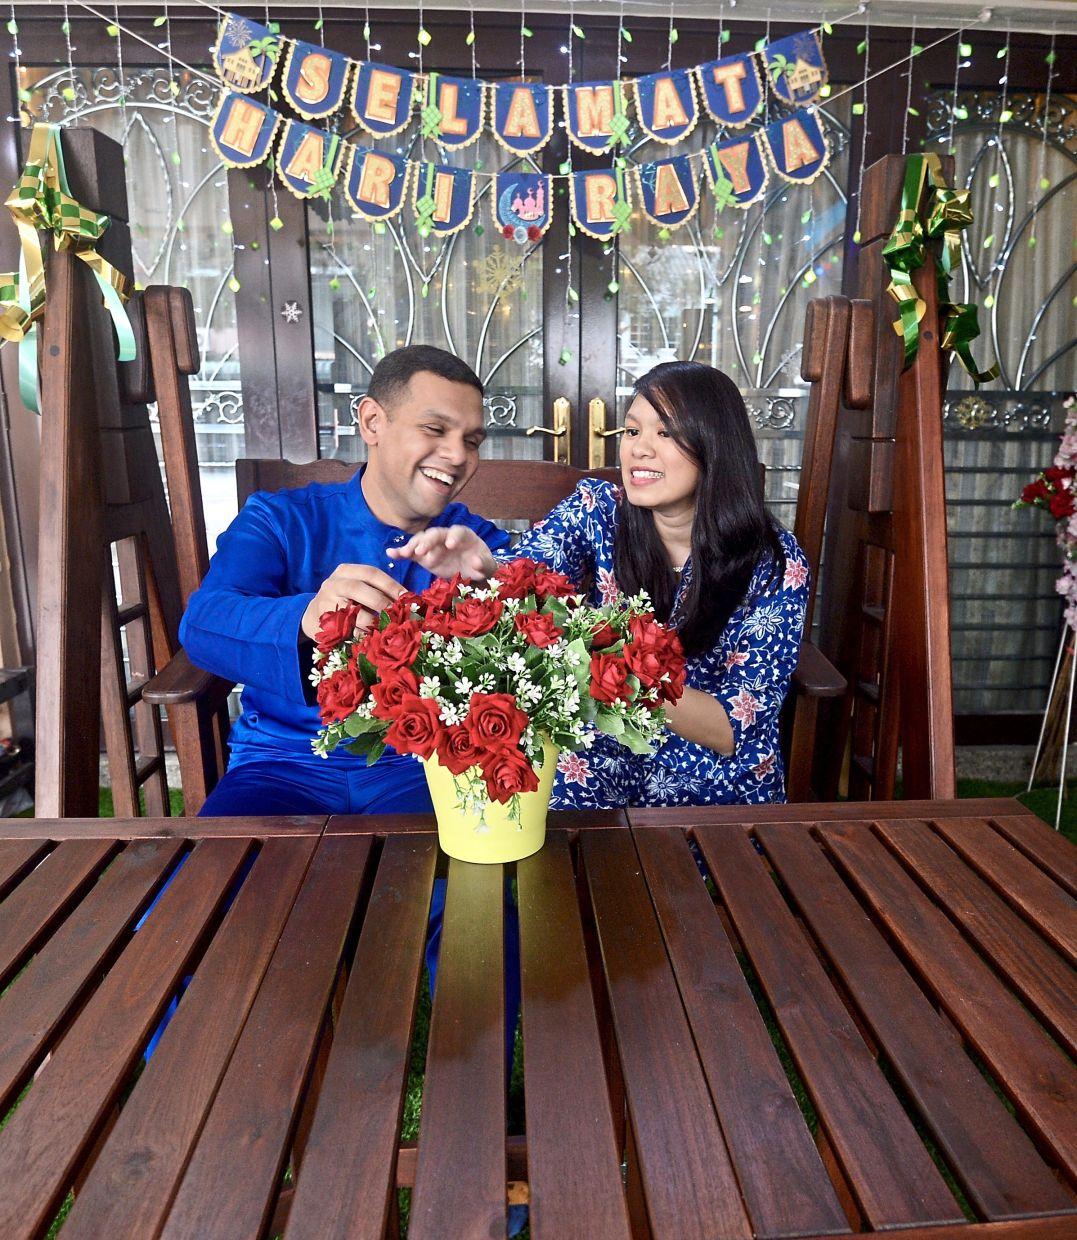 Abdul Rahman and Elya sitting in their festively done-up house porch.